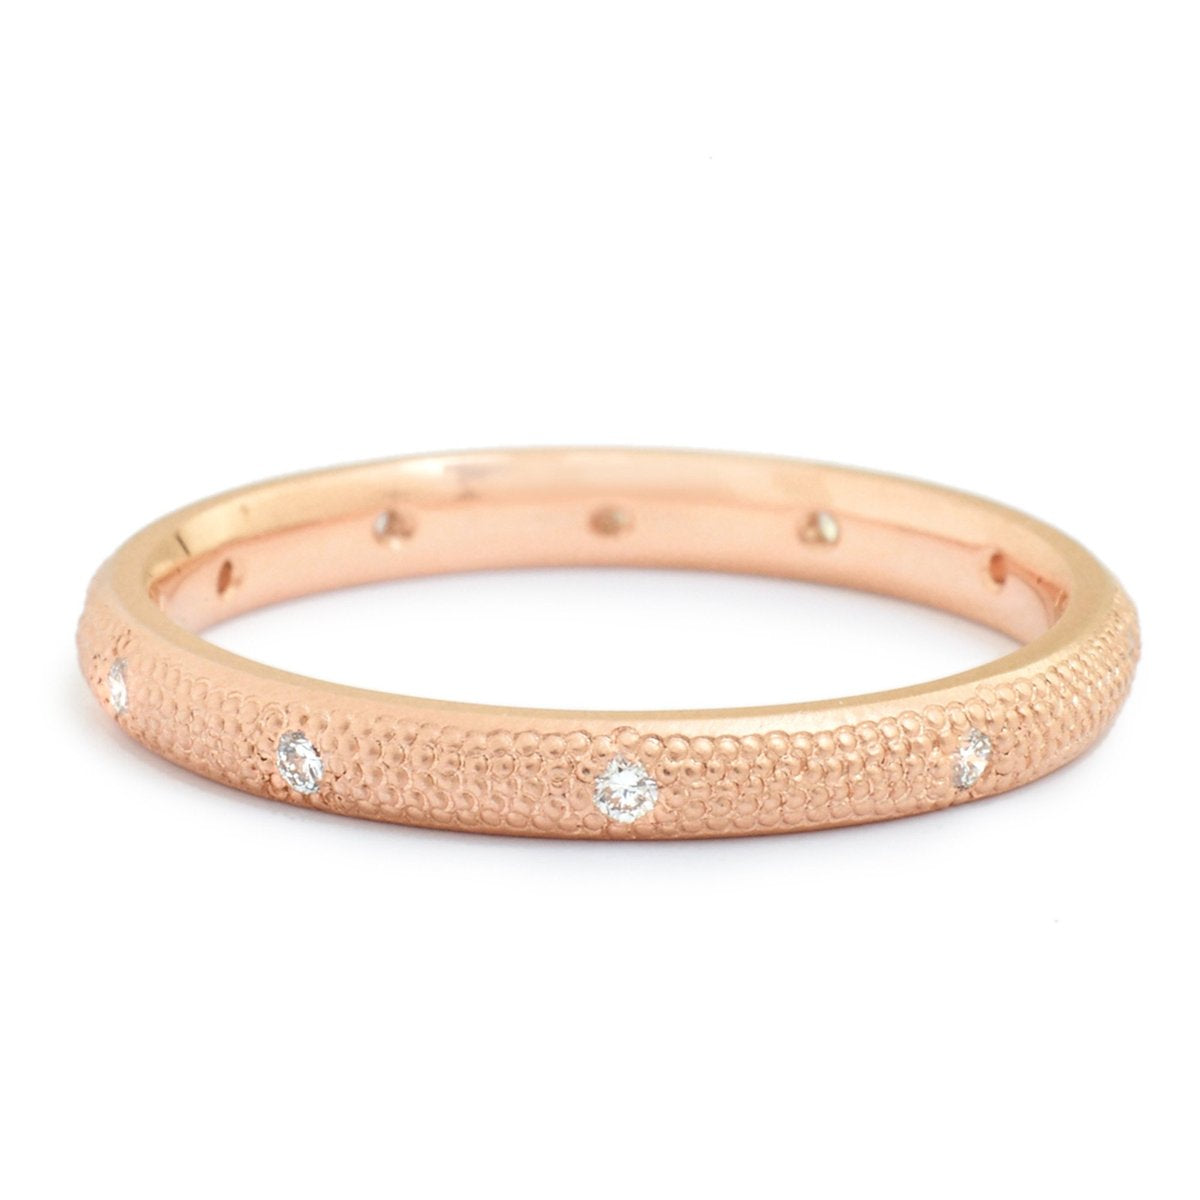 Stardust Band with Diamonds